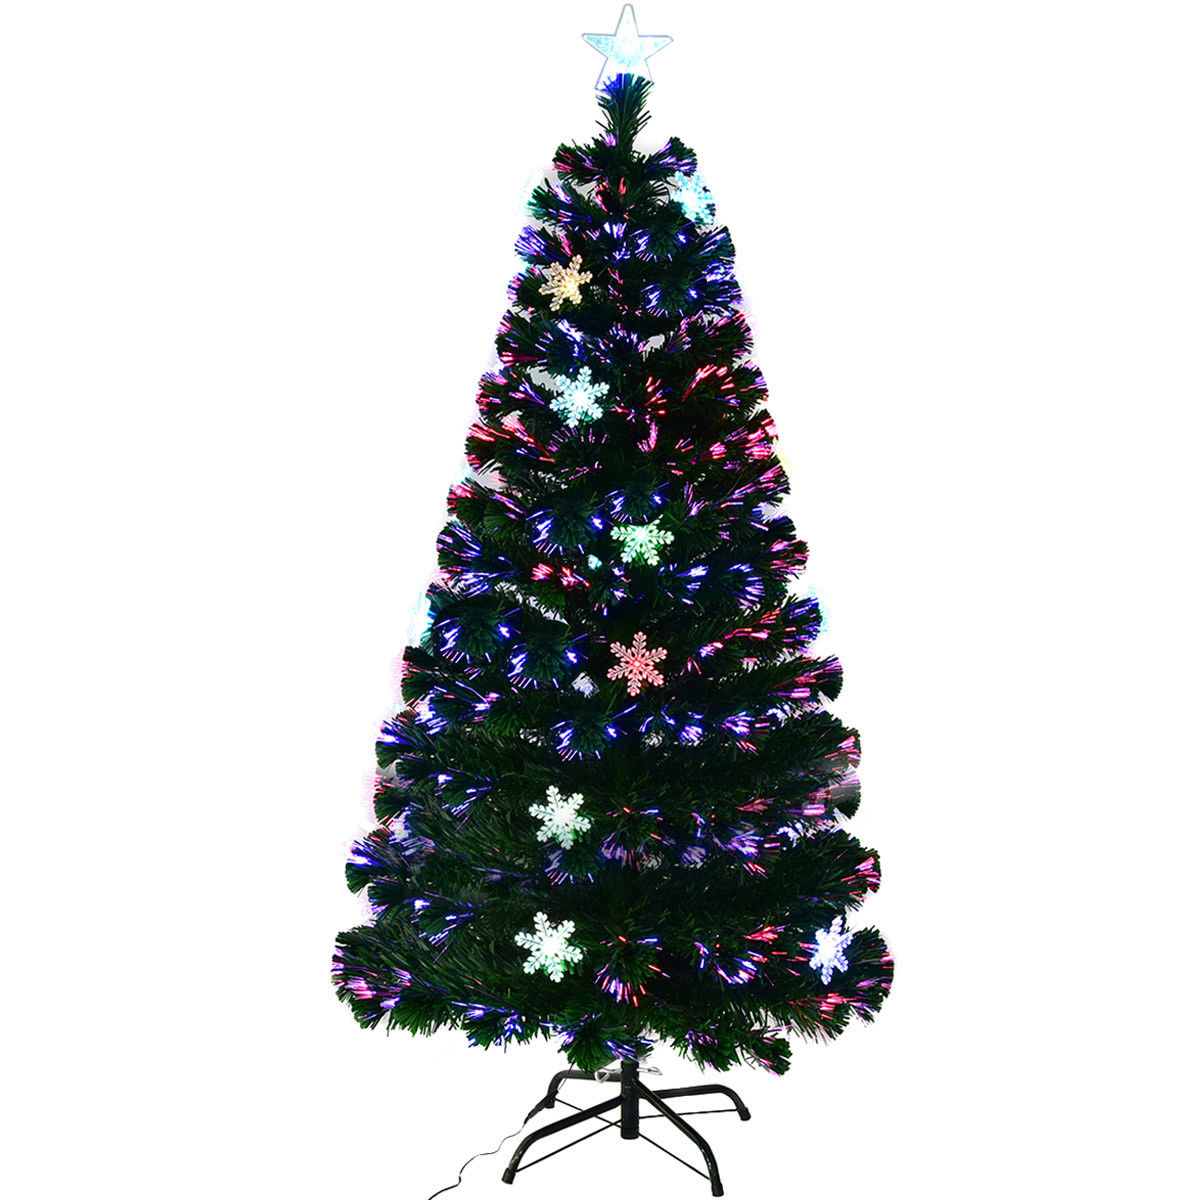 Gymax 7' Pre-Lit Multi-Color Lights Fiber Optic Artificial Christmas Tree with Snowflakes